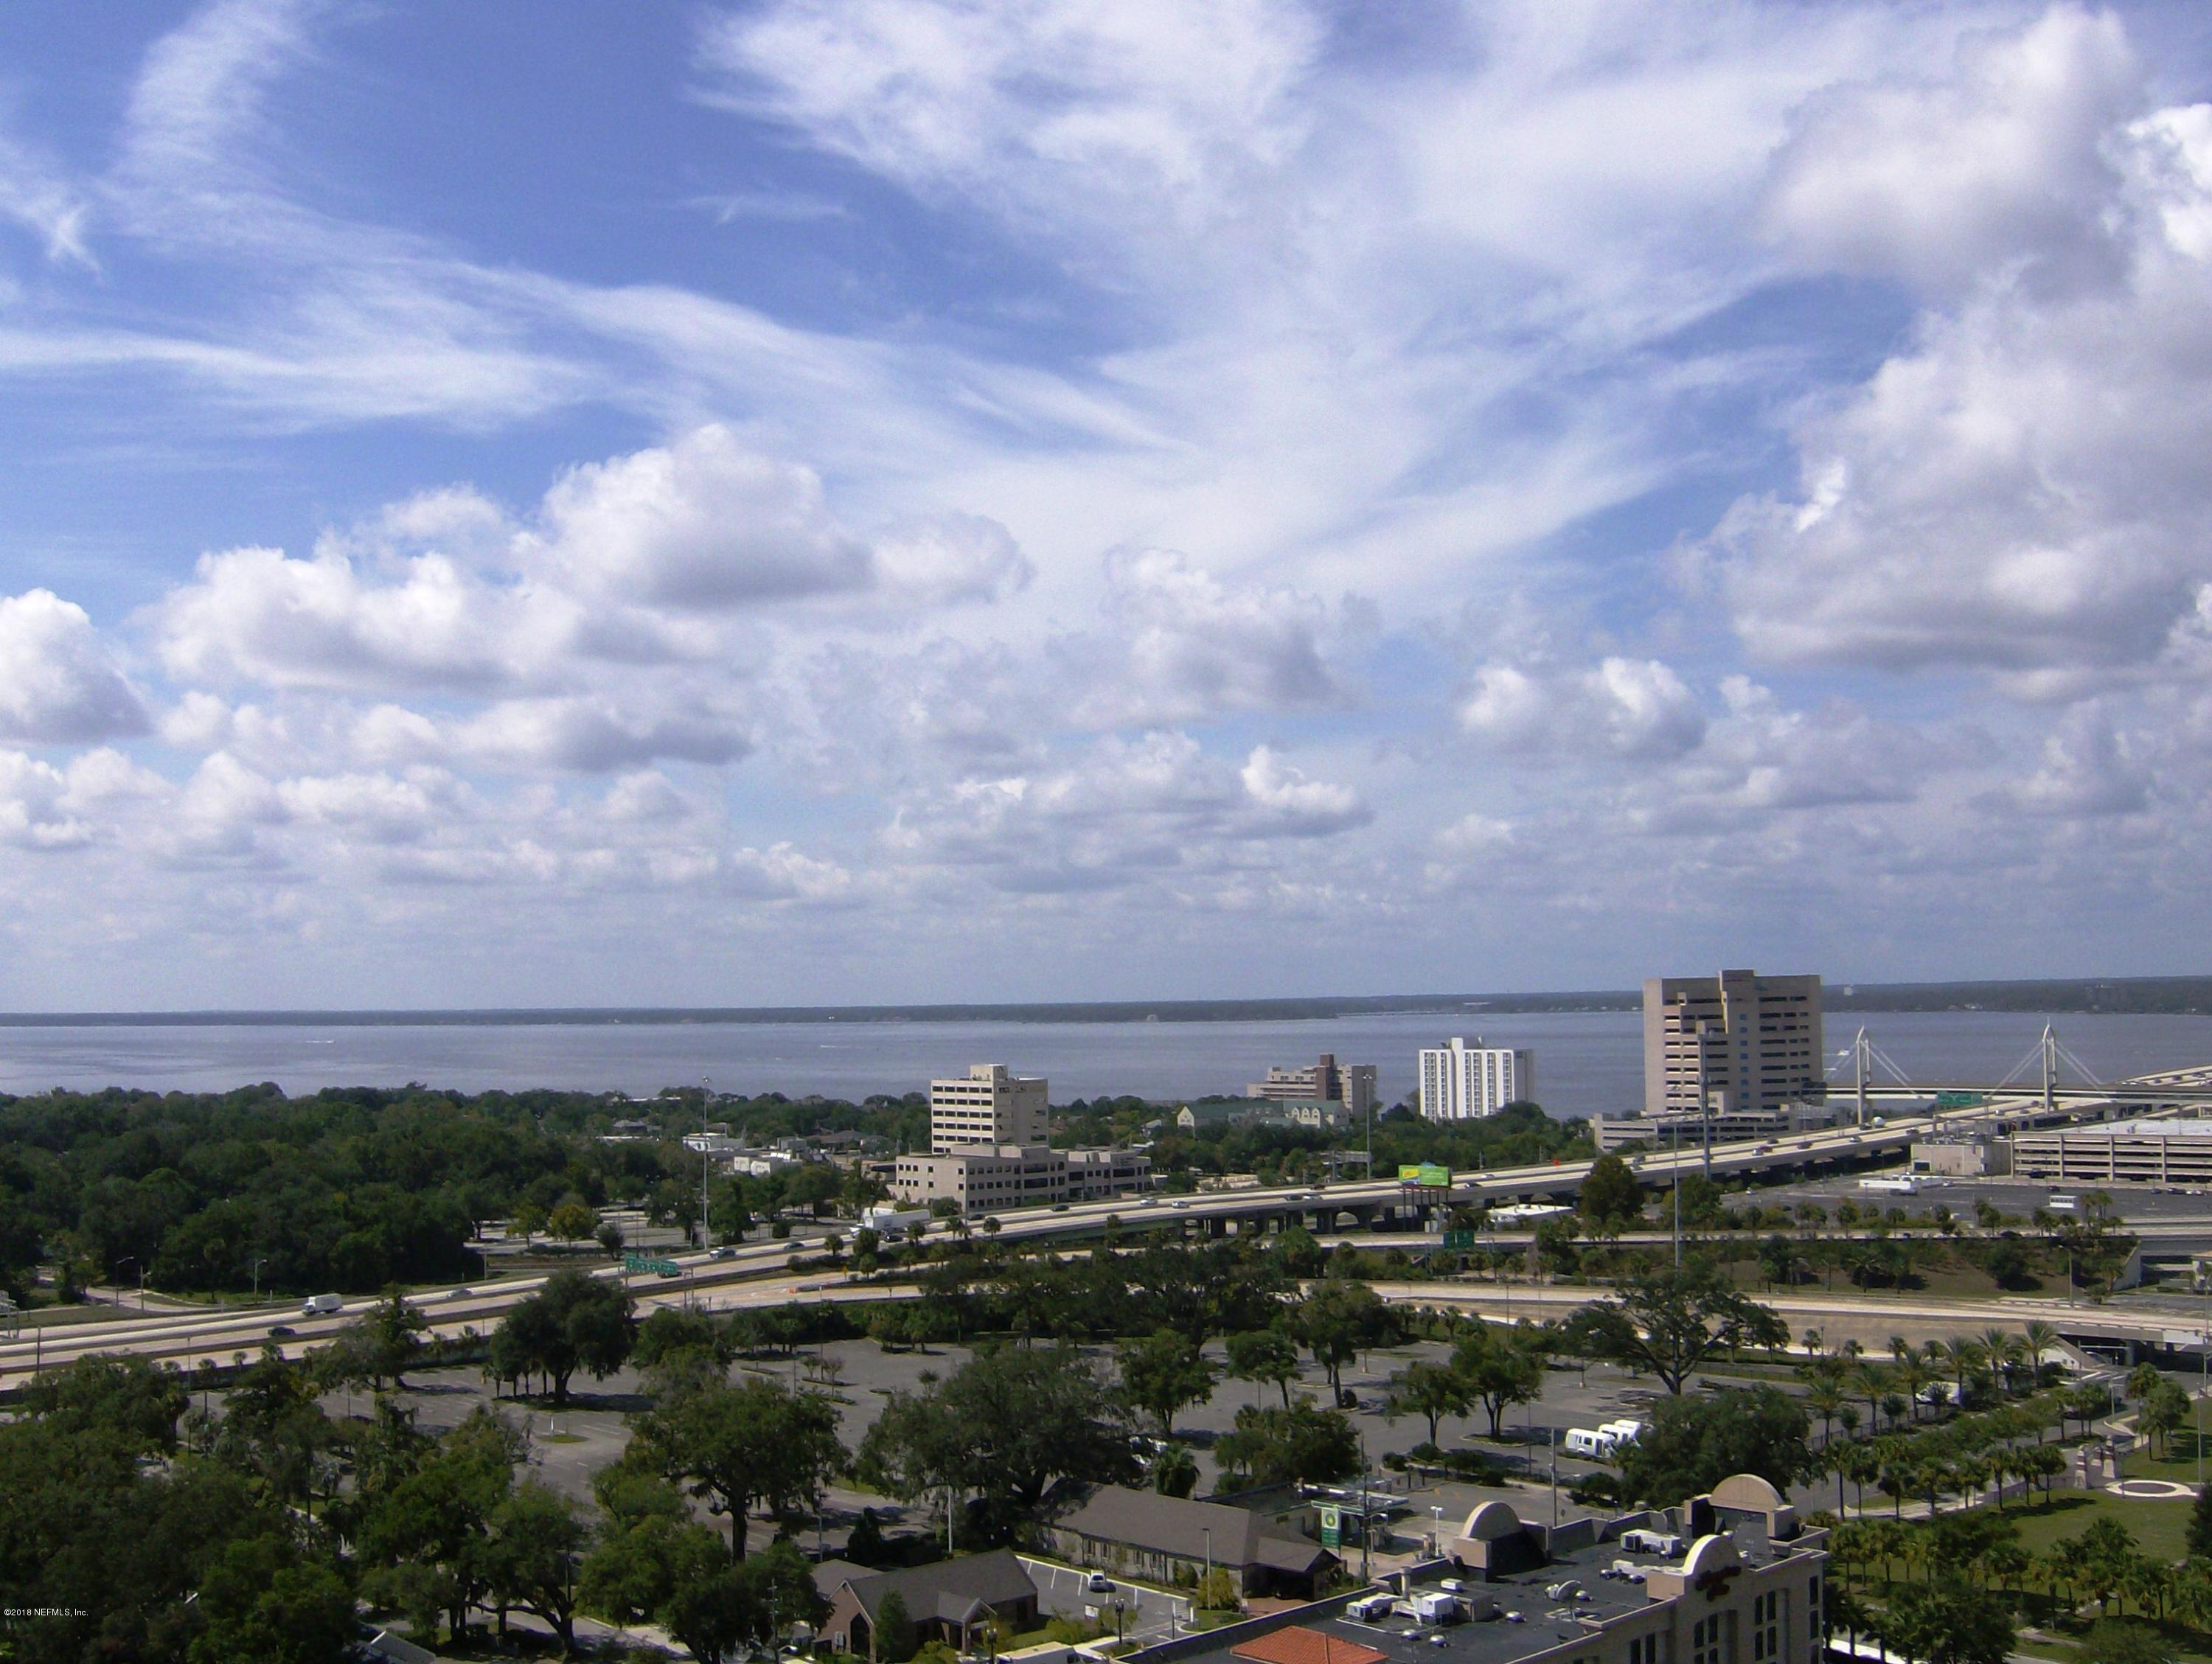 1478 RIVERPLACE, JACKSONVILLE, FLORIDA 32207, 1 Bedroom Bedrooms, ,1 BathroomBathrooms,Residential - condos/townhomes,For sale,RIVERPLACE,964900